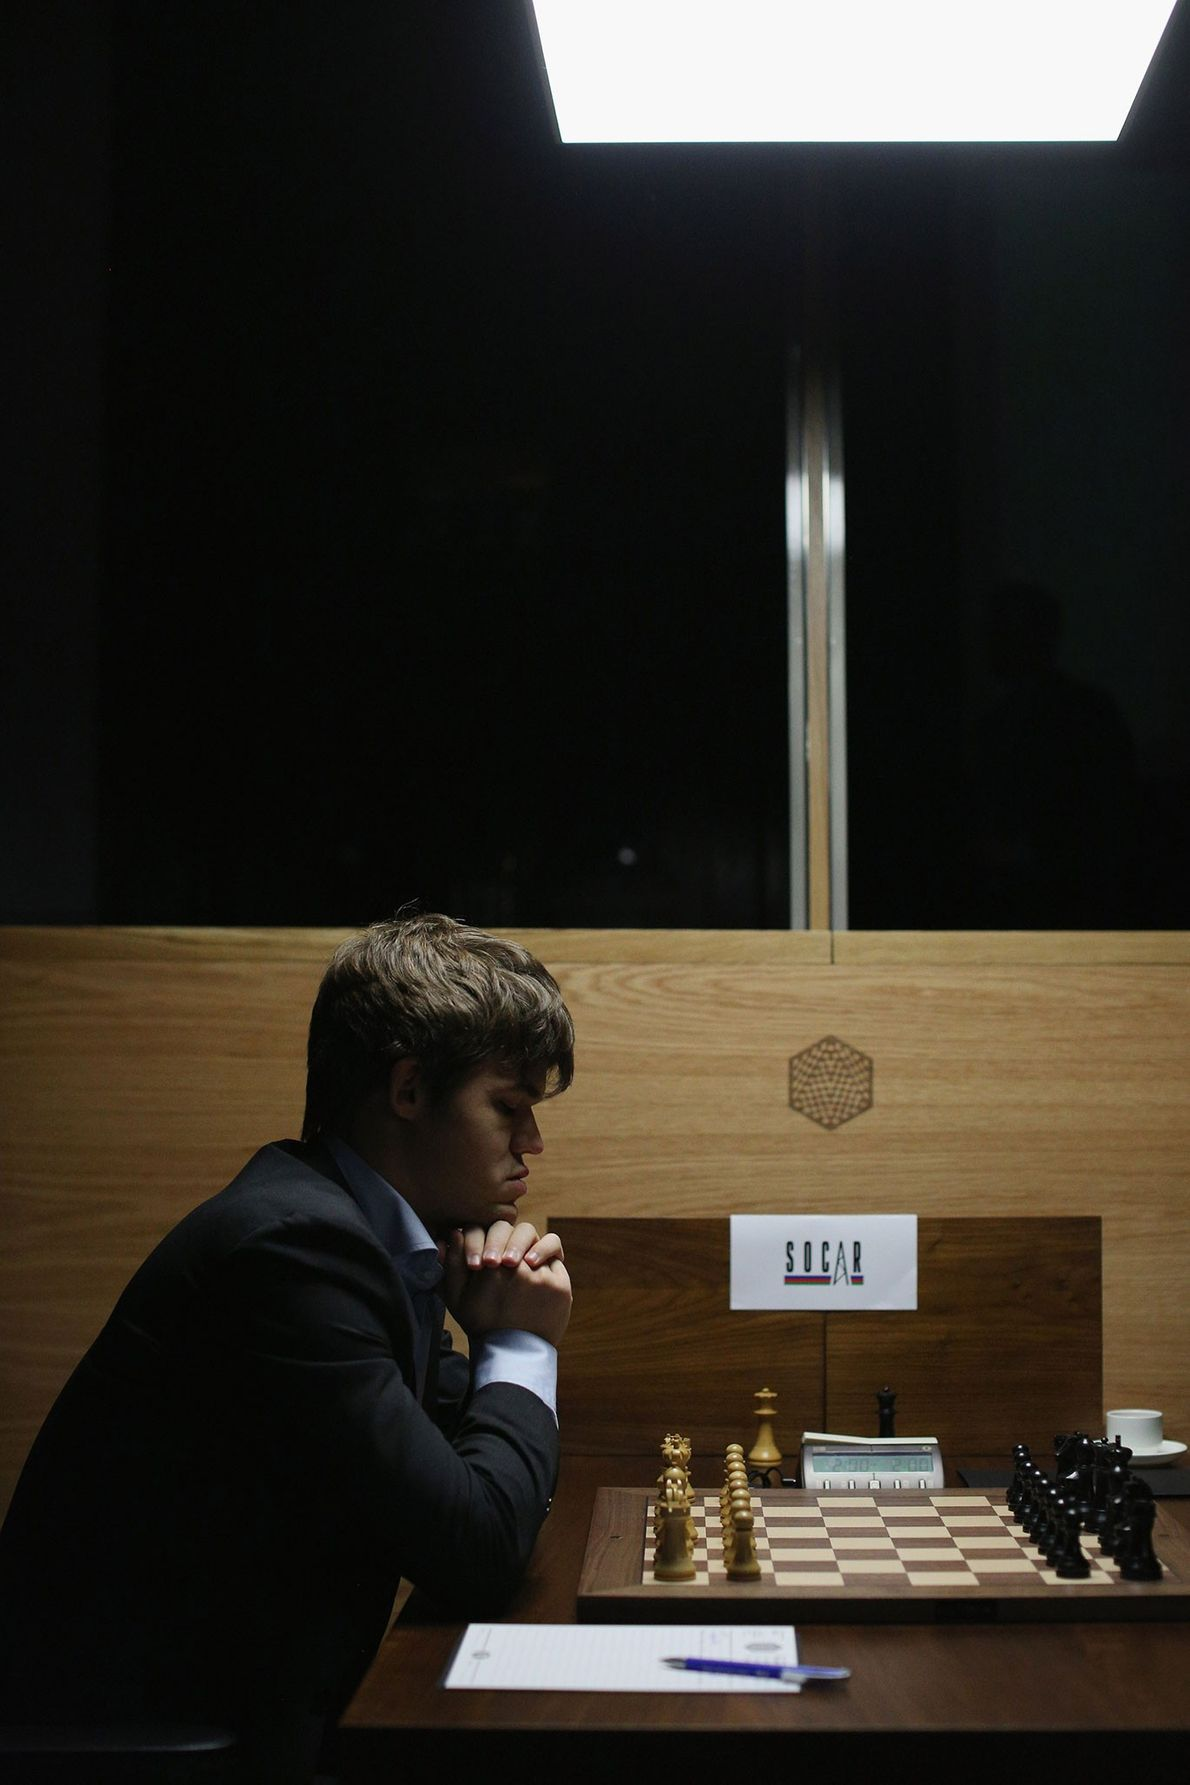 Magnus Carlsen, the world's number one chess player, pictured here, is one of those people who ...